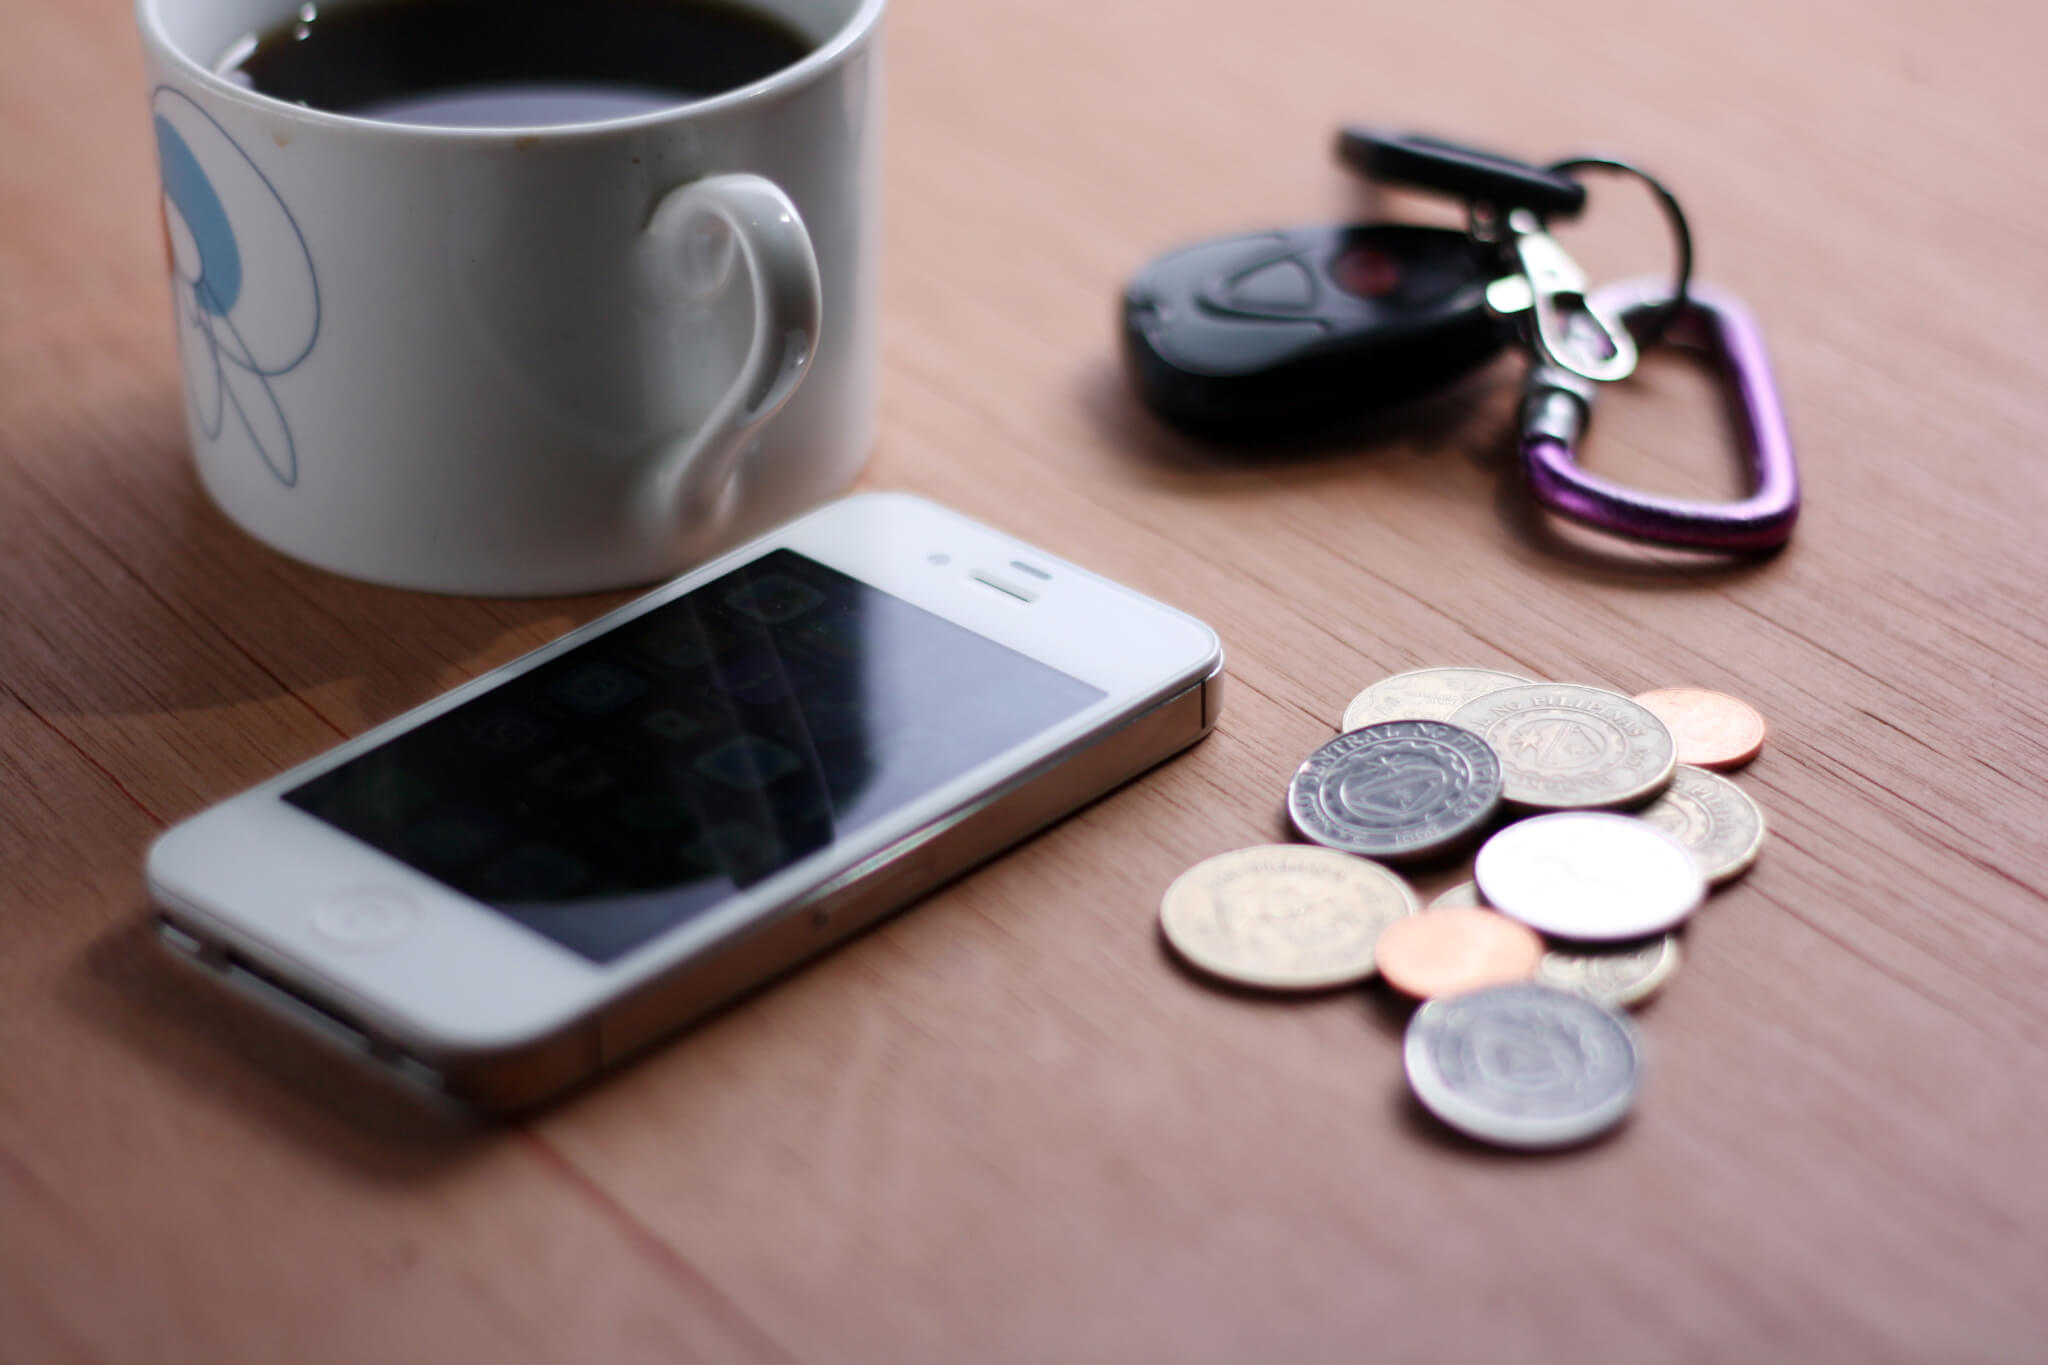 An iPhone next to cash, keys and a mug of tea on the table